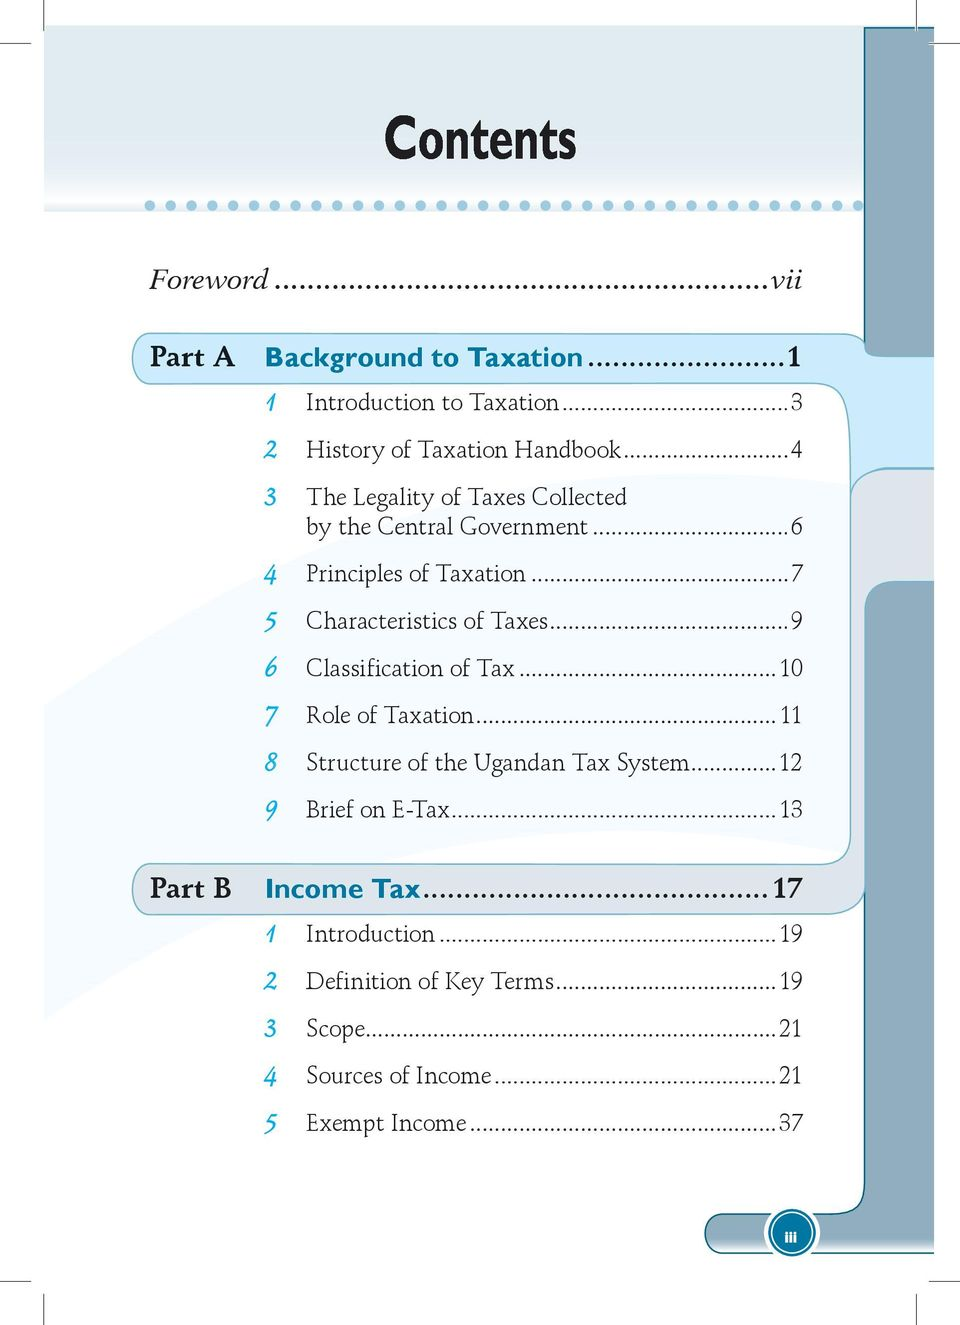 role of taxation